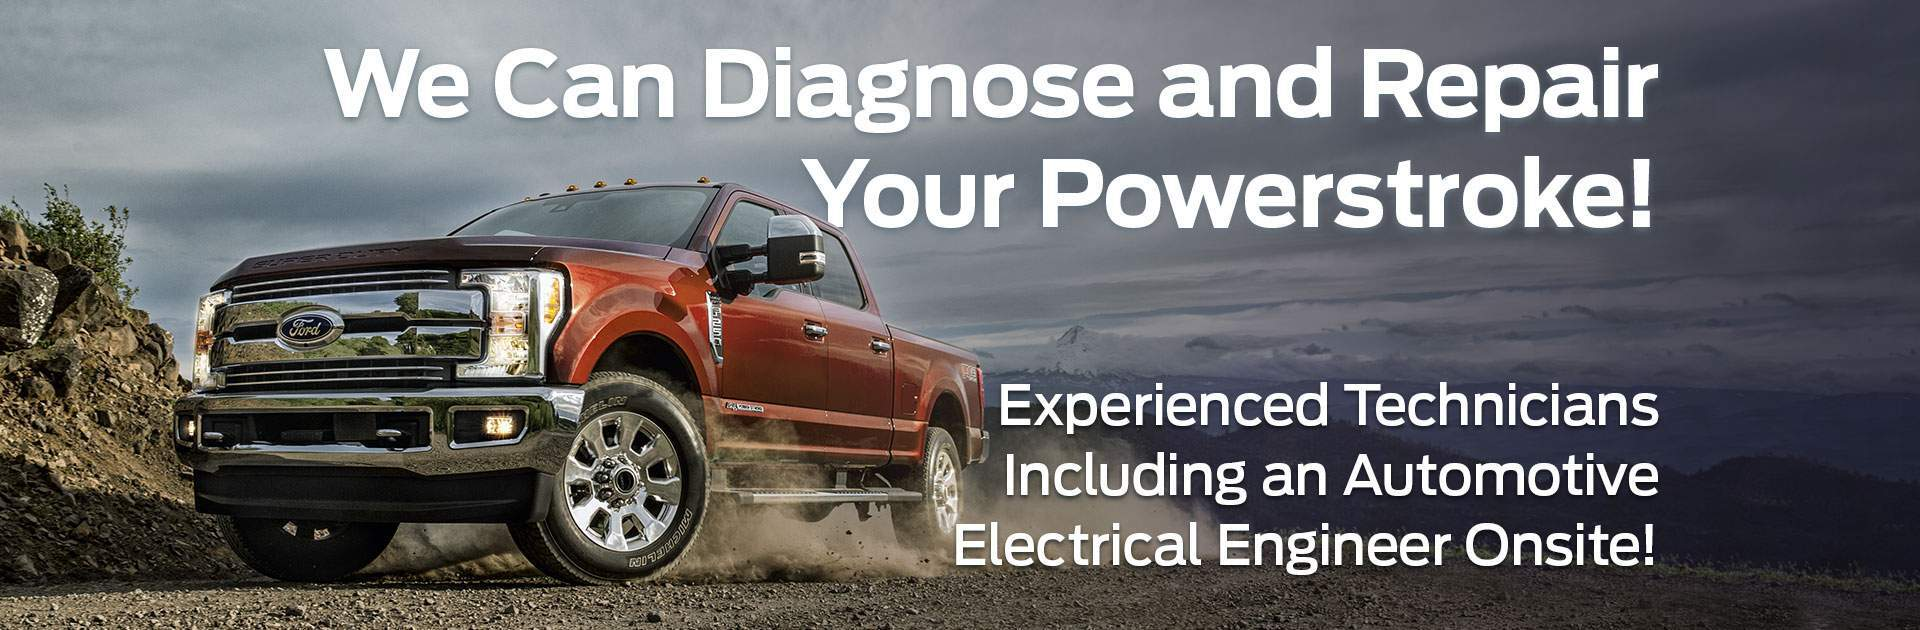 Powerstroke Diagnose and Repair